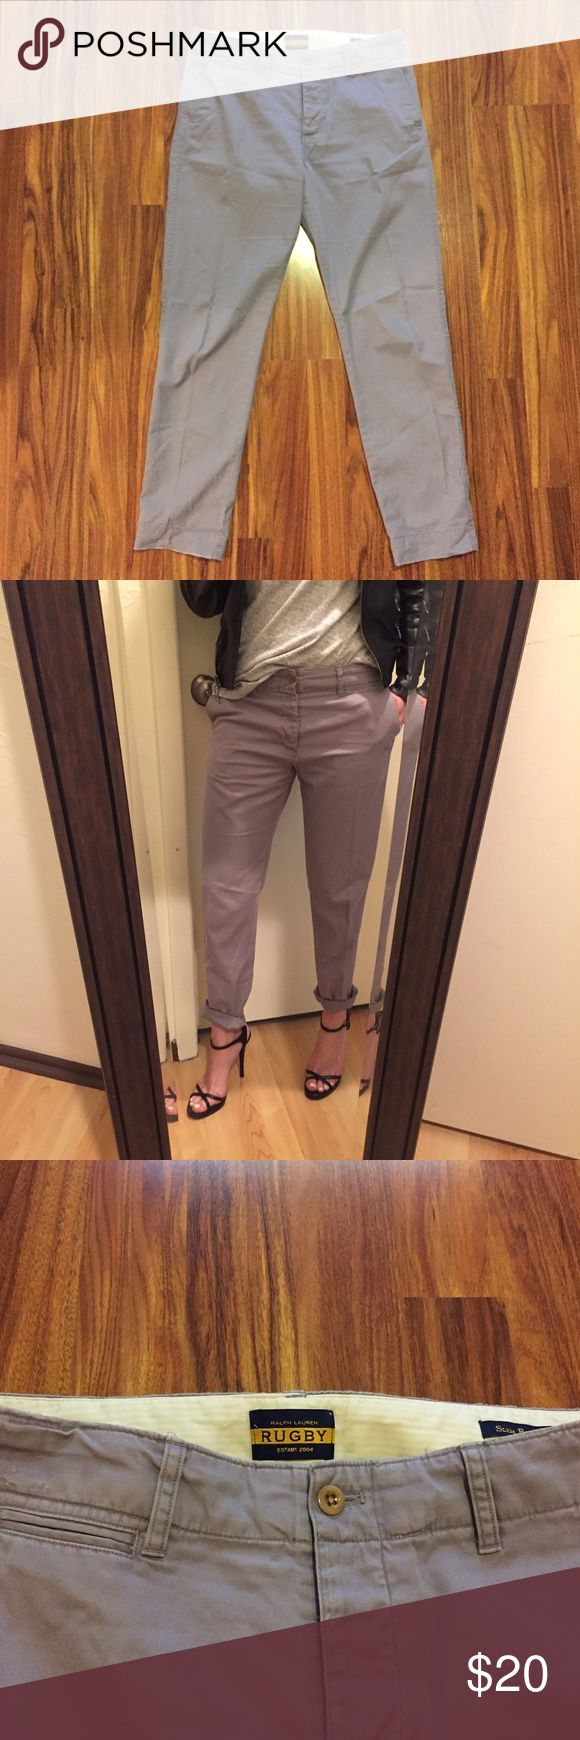 """RUGBY RALPH LAUREN Boyfriend Chino Fit is """"Slim Boyfriend"""". Lightweight chino pant, 100% Cotton.  Color is a pastel purple.  Slight distressing around pockets and bottom hems.  37.5"""" long from waist to bottom hem, 10"""" rise, waist measures 16.5"""" when laid flat.  Great condition. Ralph Lauren Pants"""